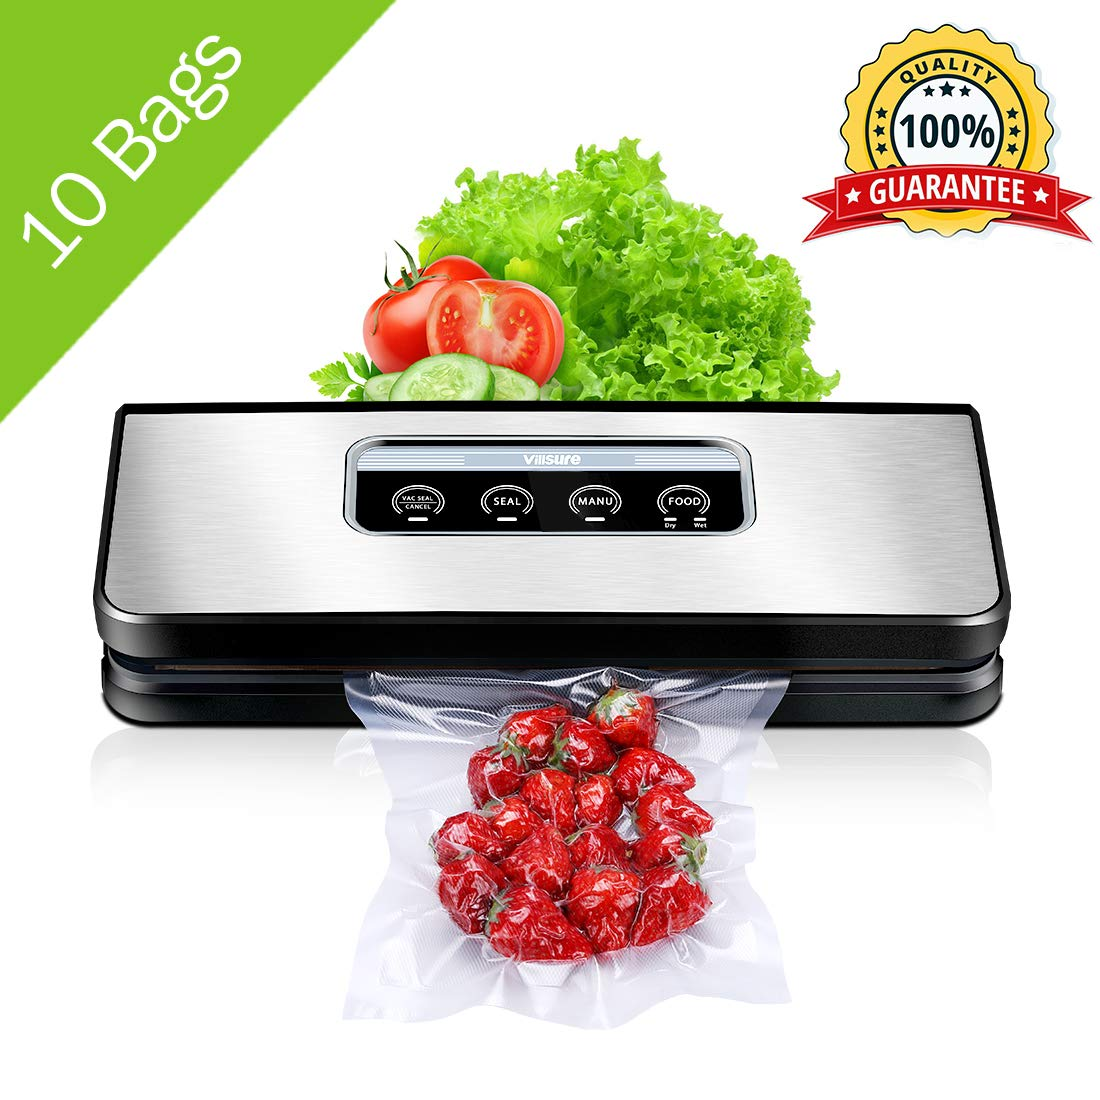 Vacuum Sealer Machine for Food Preservation, Villsure Food Sealer Automatic Vacuum Sealing System with Hose Attachment and 10pcs Sealing Bags Starter Kit, Fresh Up to 5x Longer by Villsure